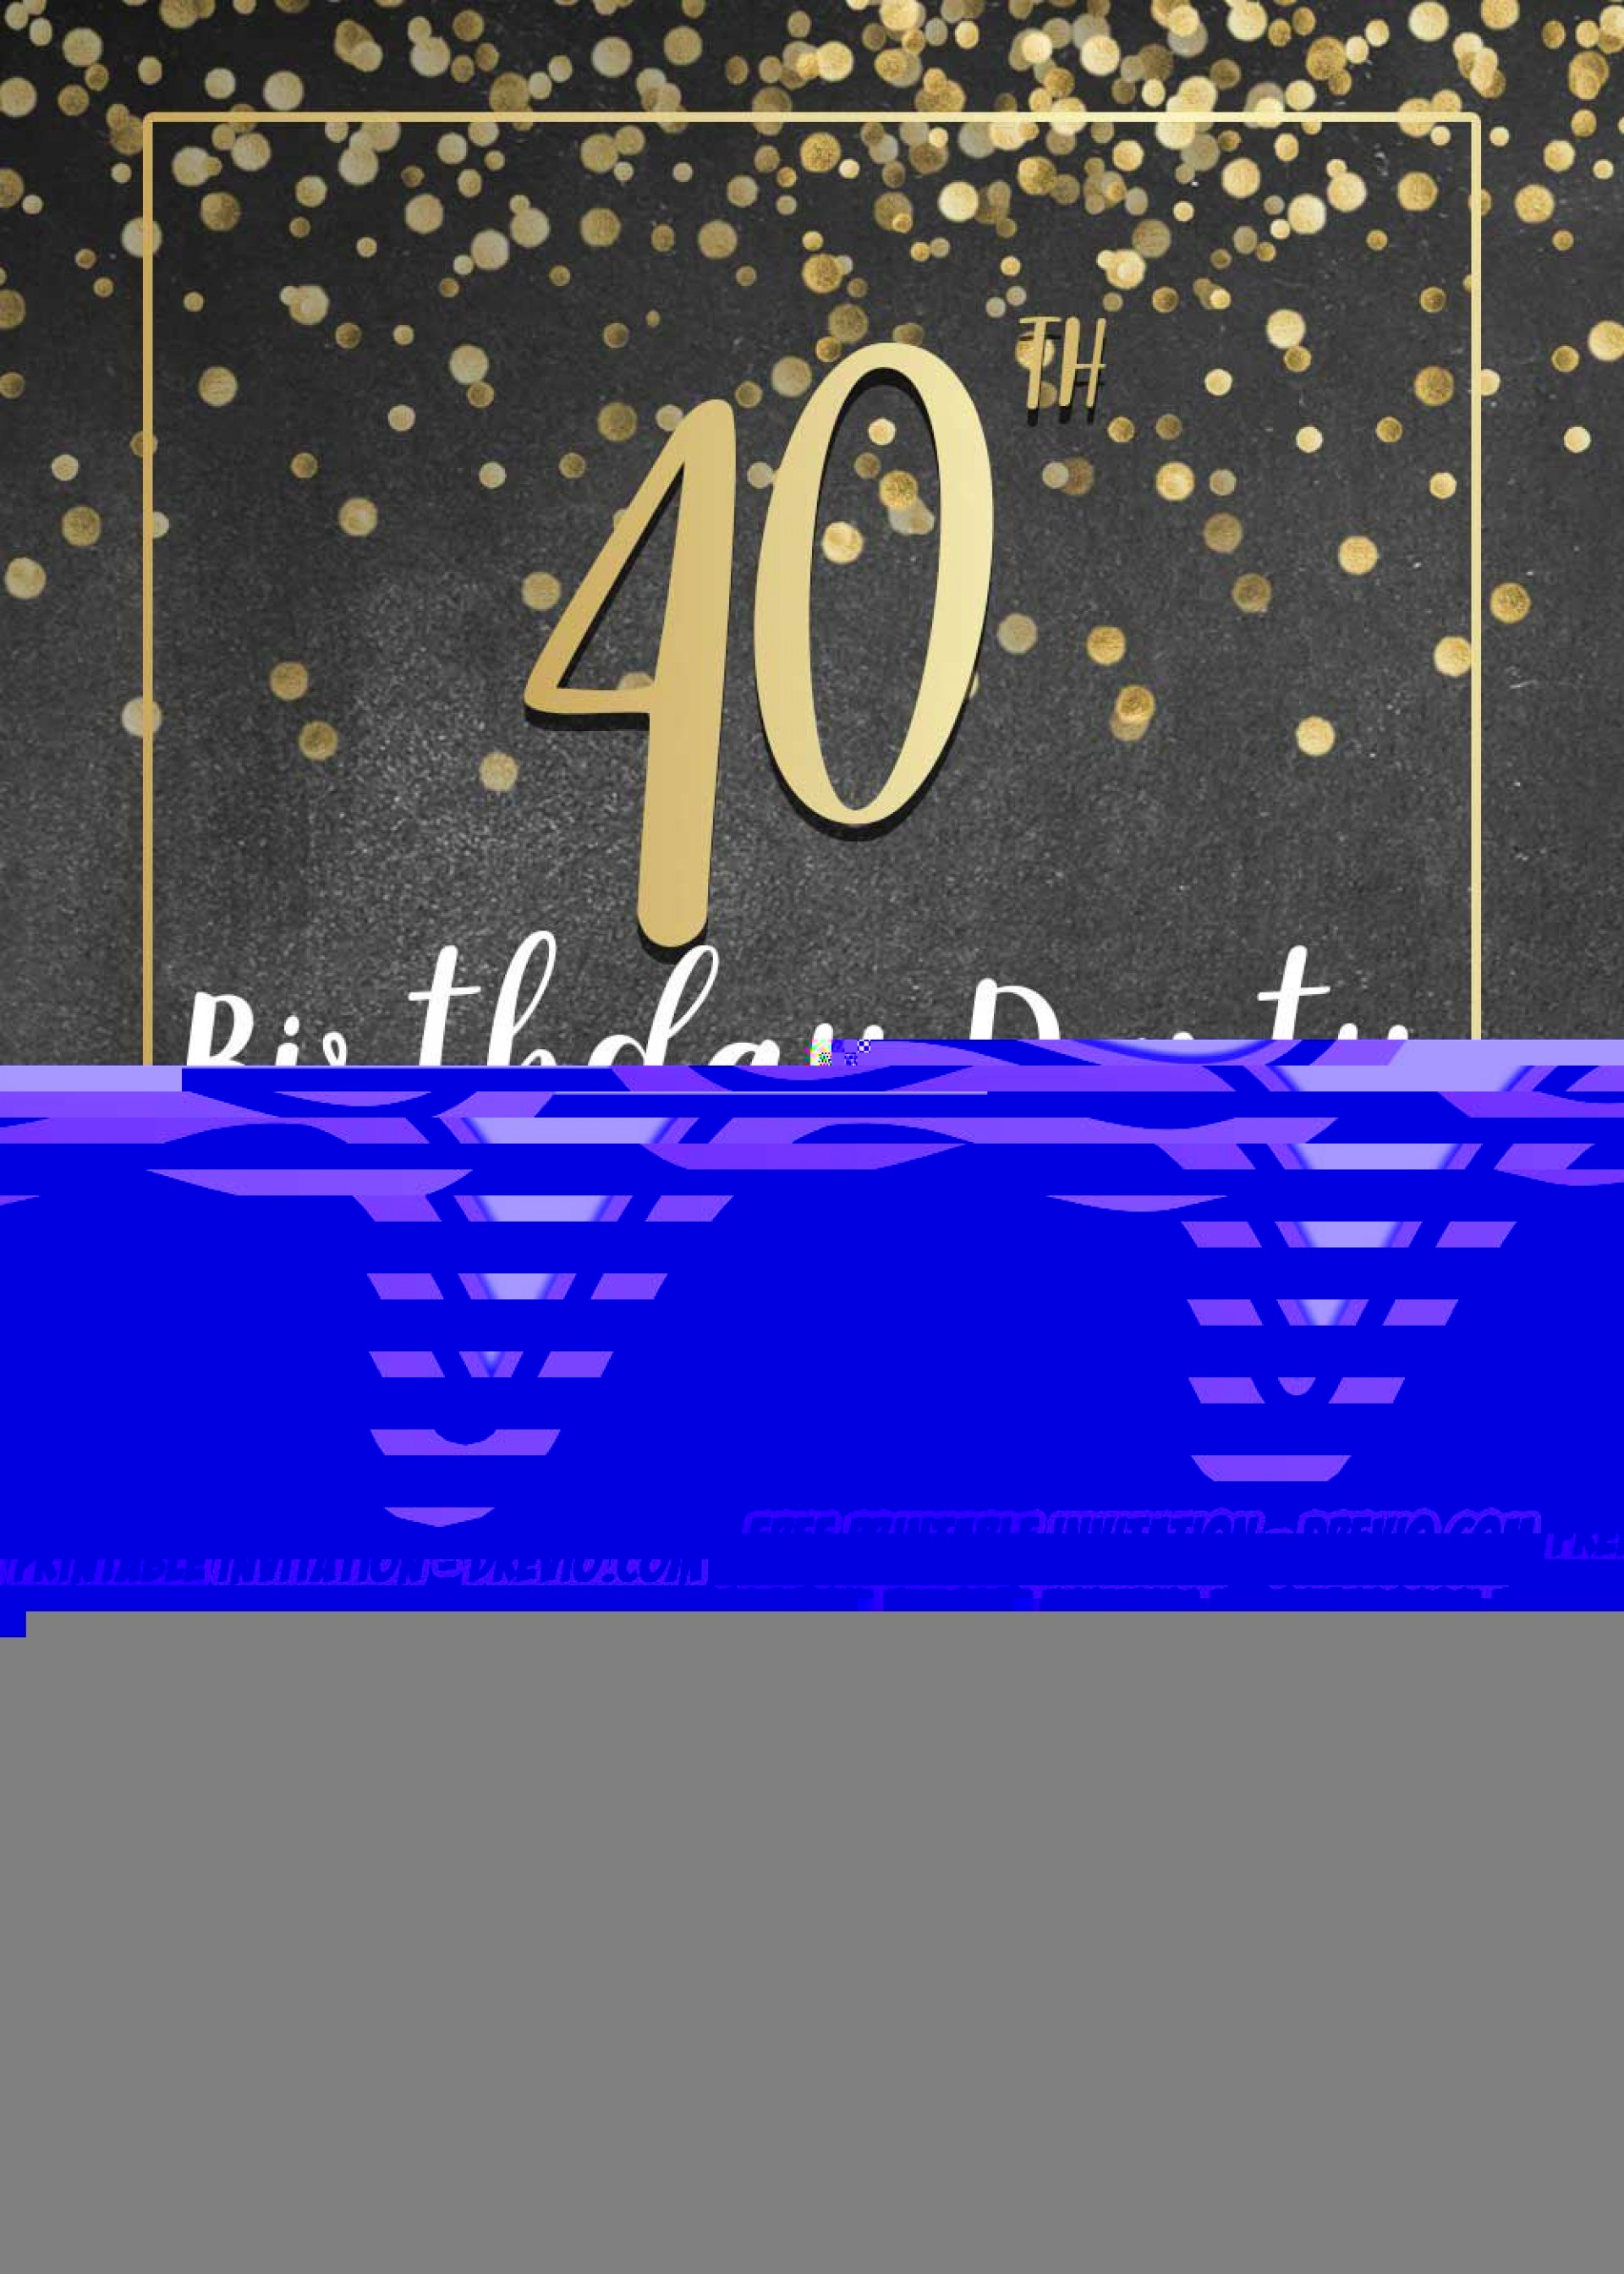 008 Imposing 70th Birthday Invitation Template Free Highest Clarity  Surprise Invite With Photo1920